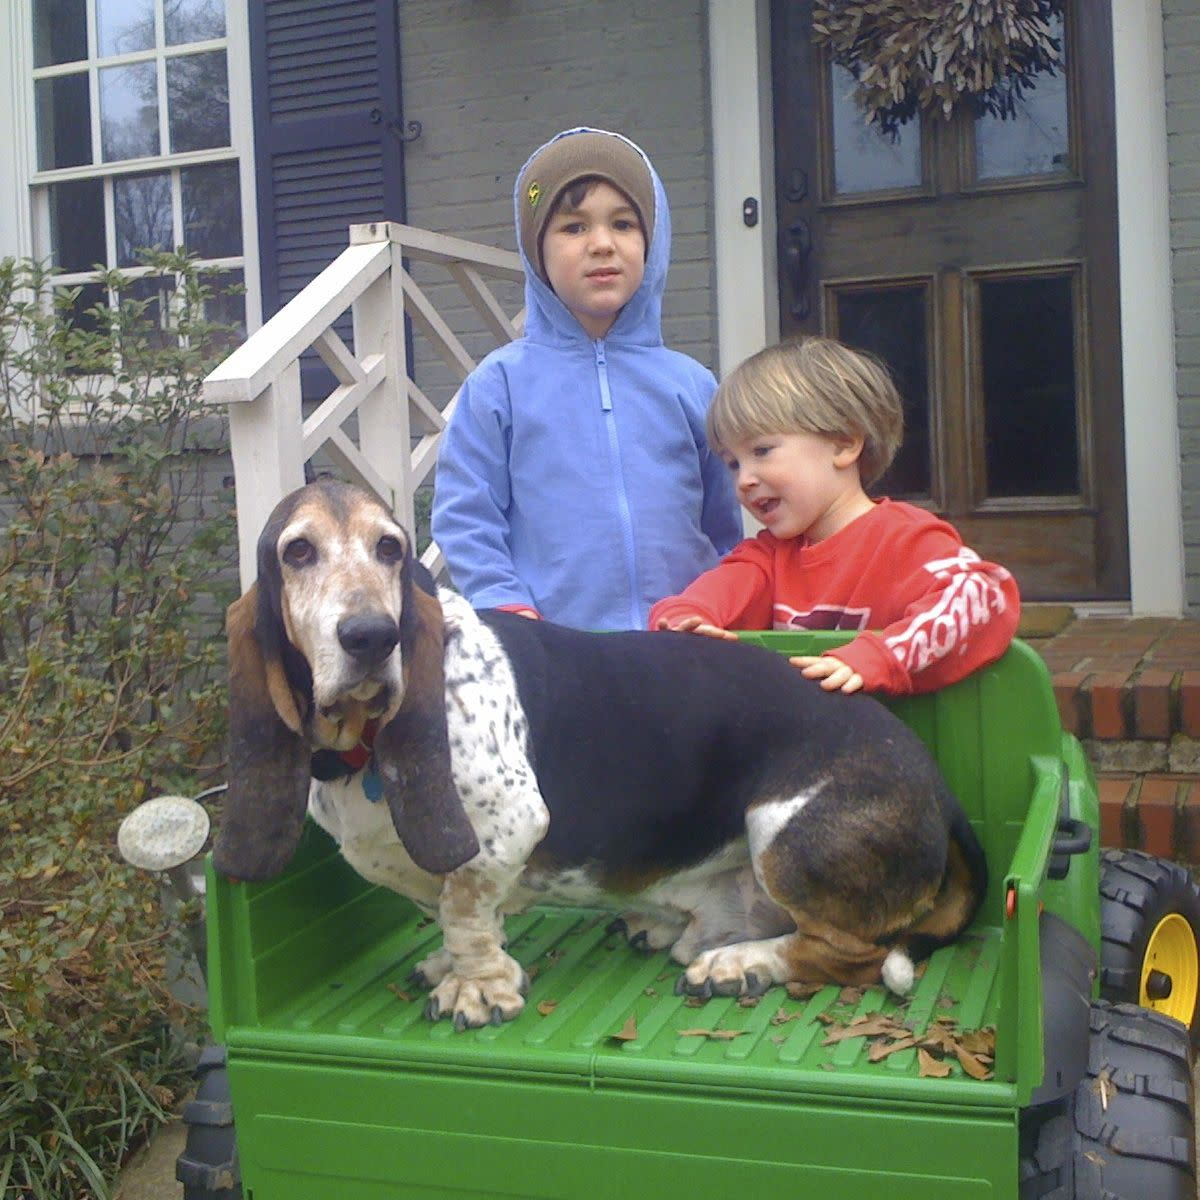 Even a basset hound can fit in a John Deere Gator! Photo by me, Mickie_G